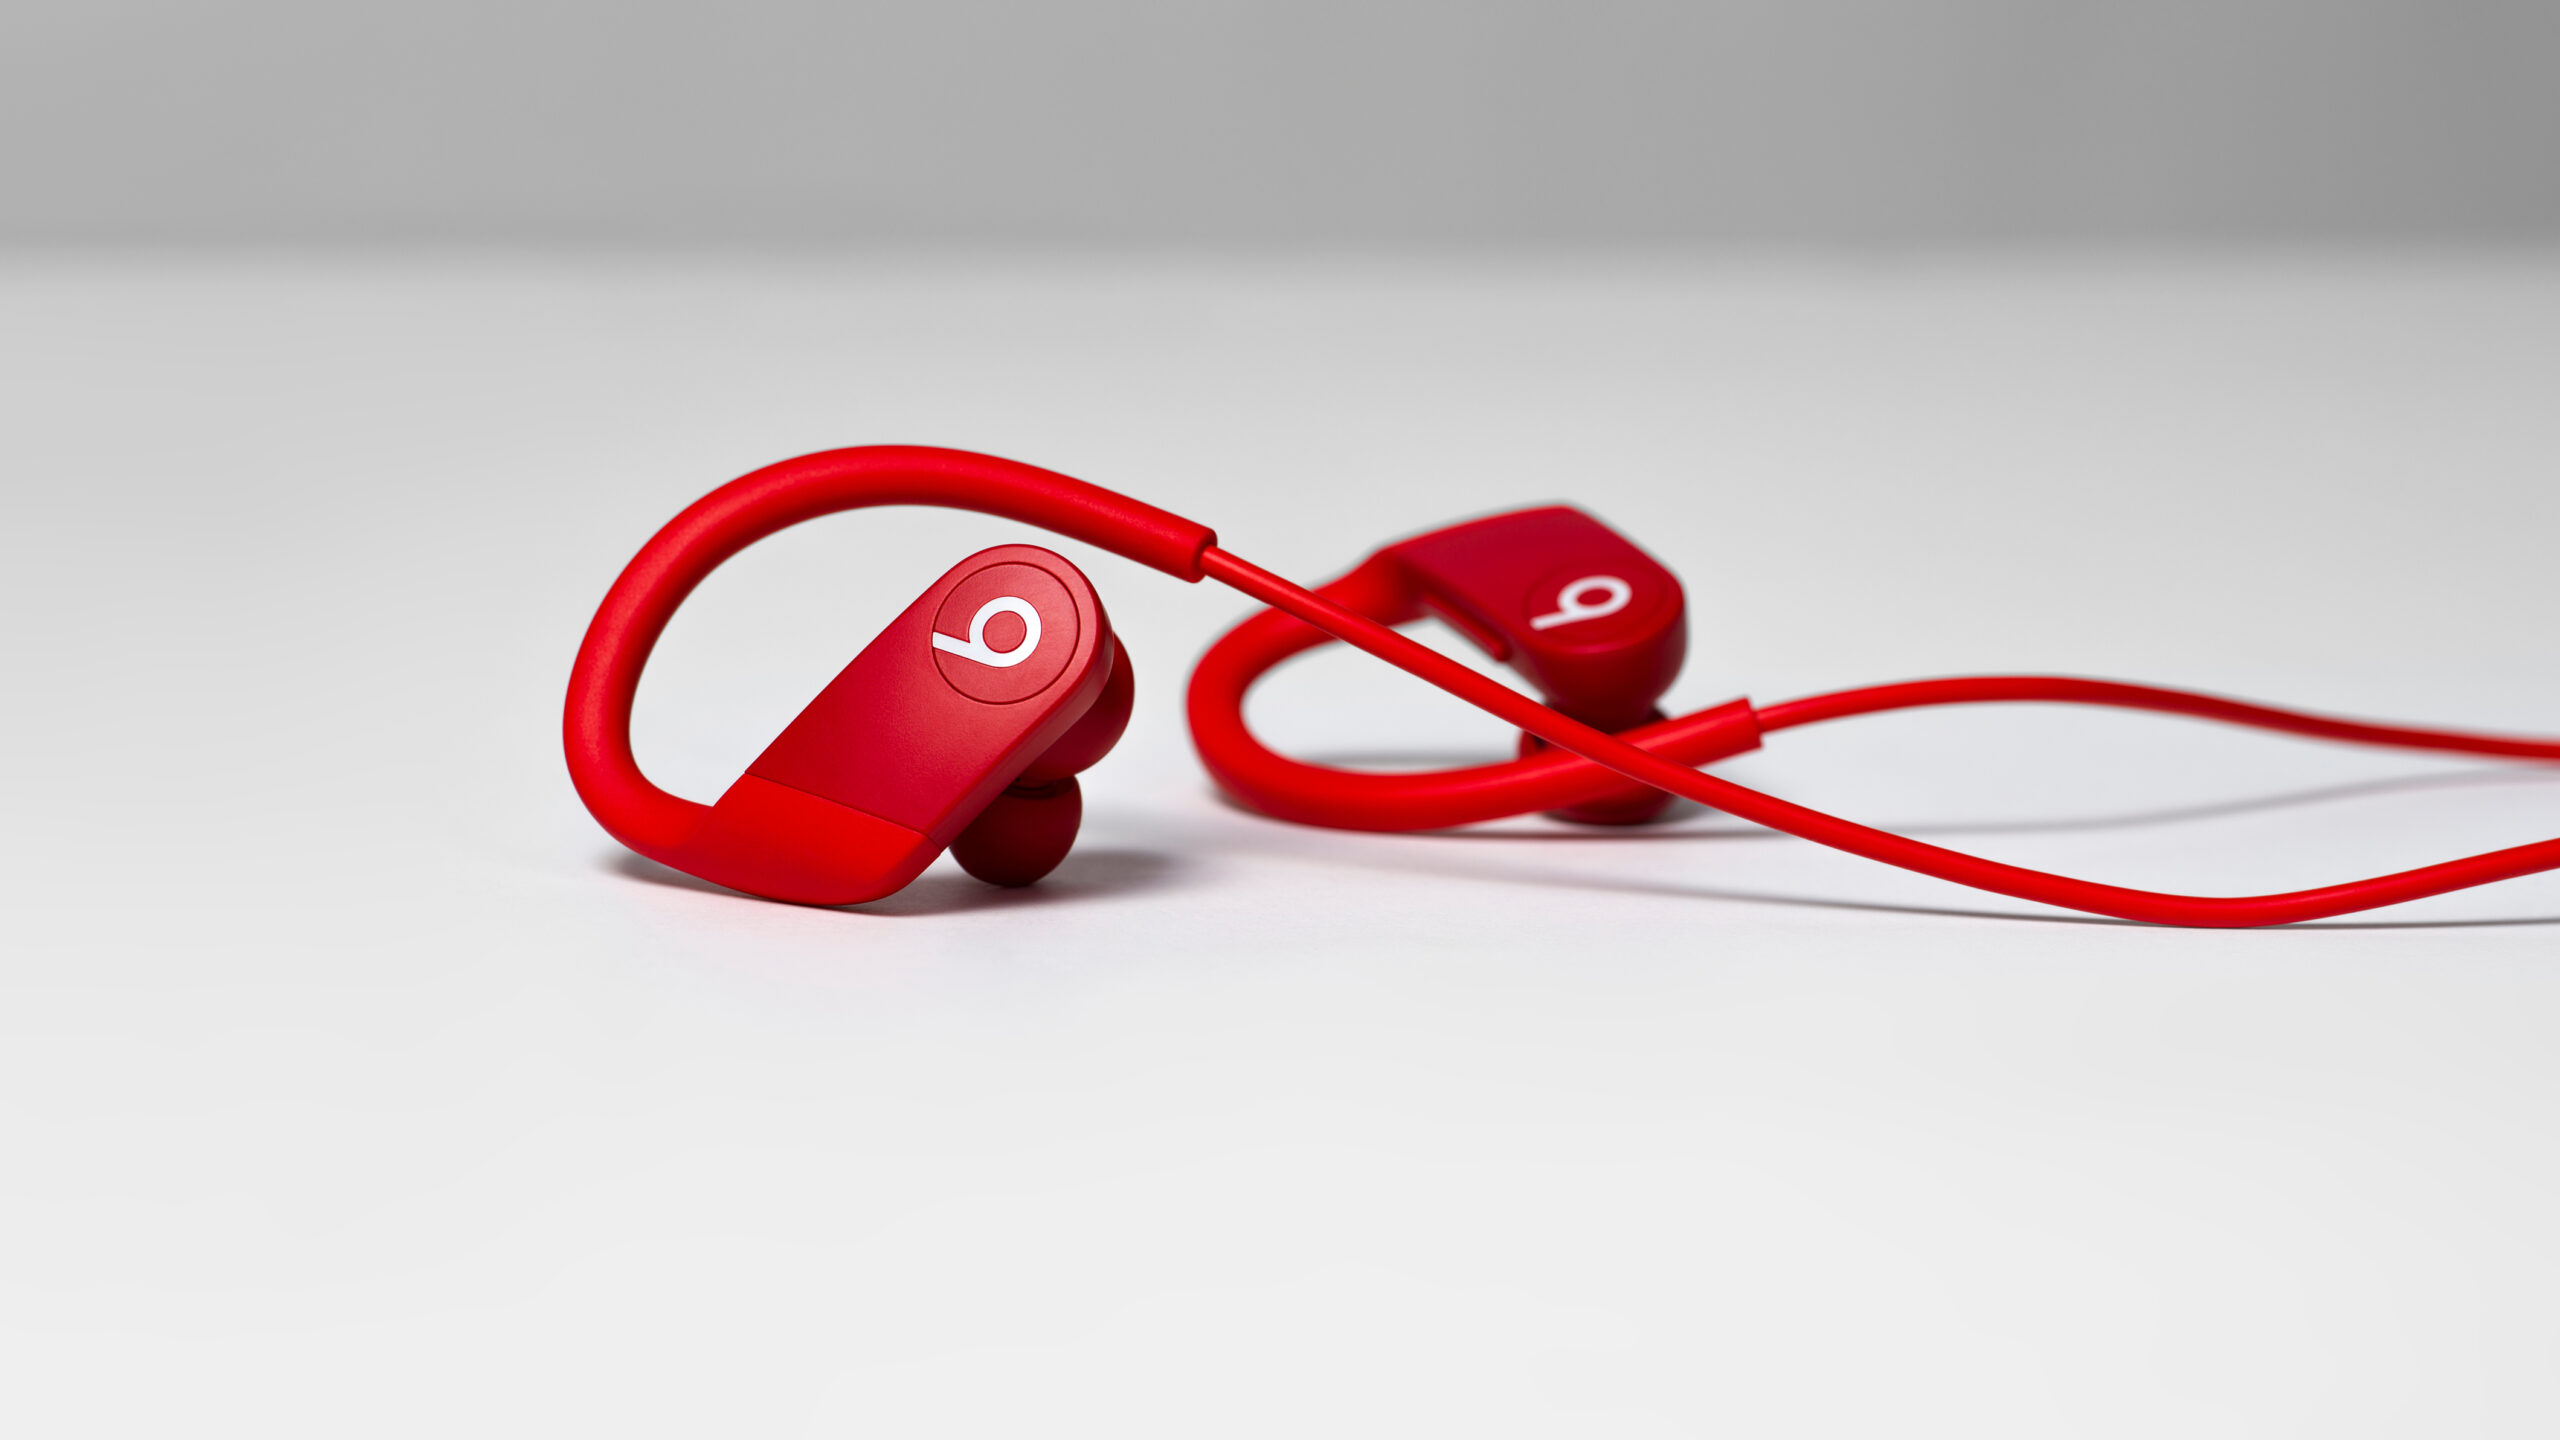 Apple launches new £130 Powerbeats with 15-hour battery life and Hey Siri support